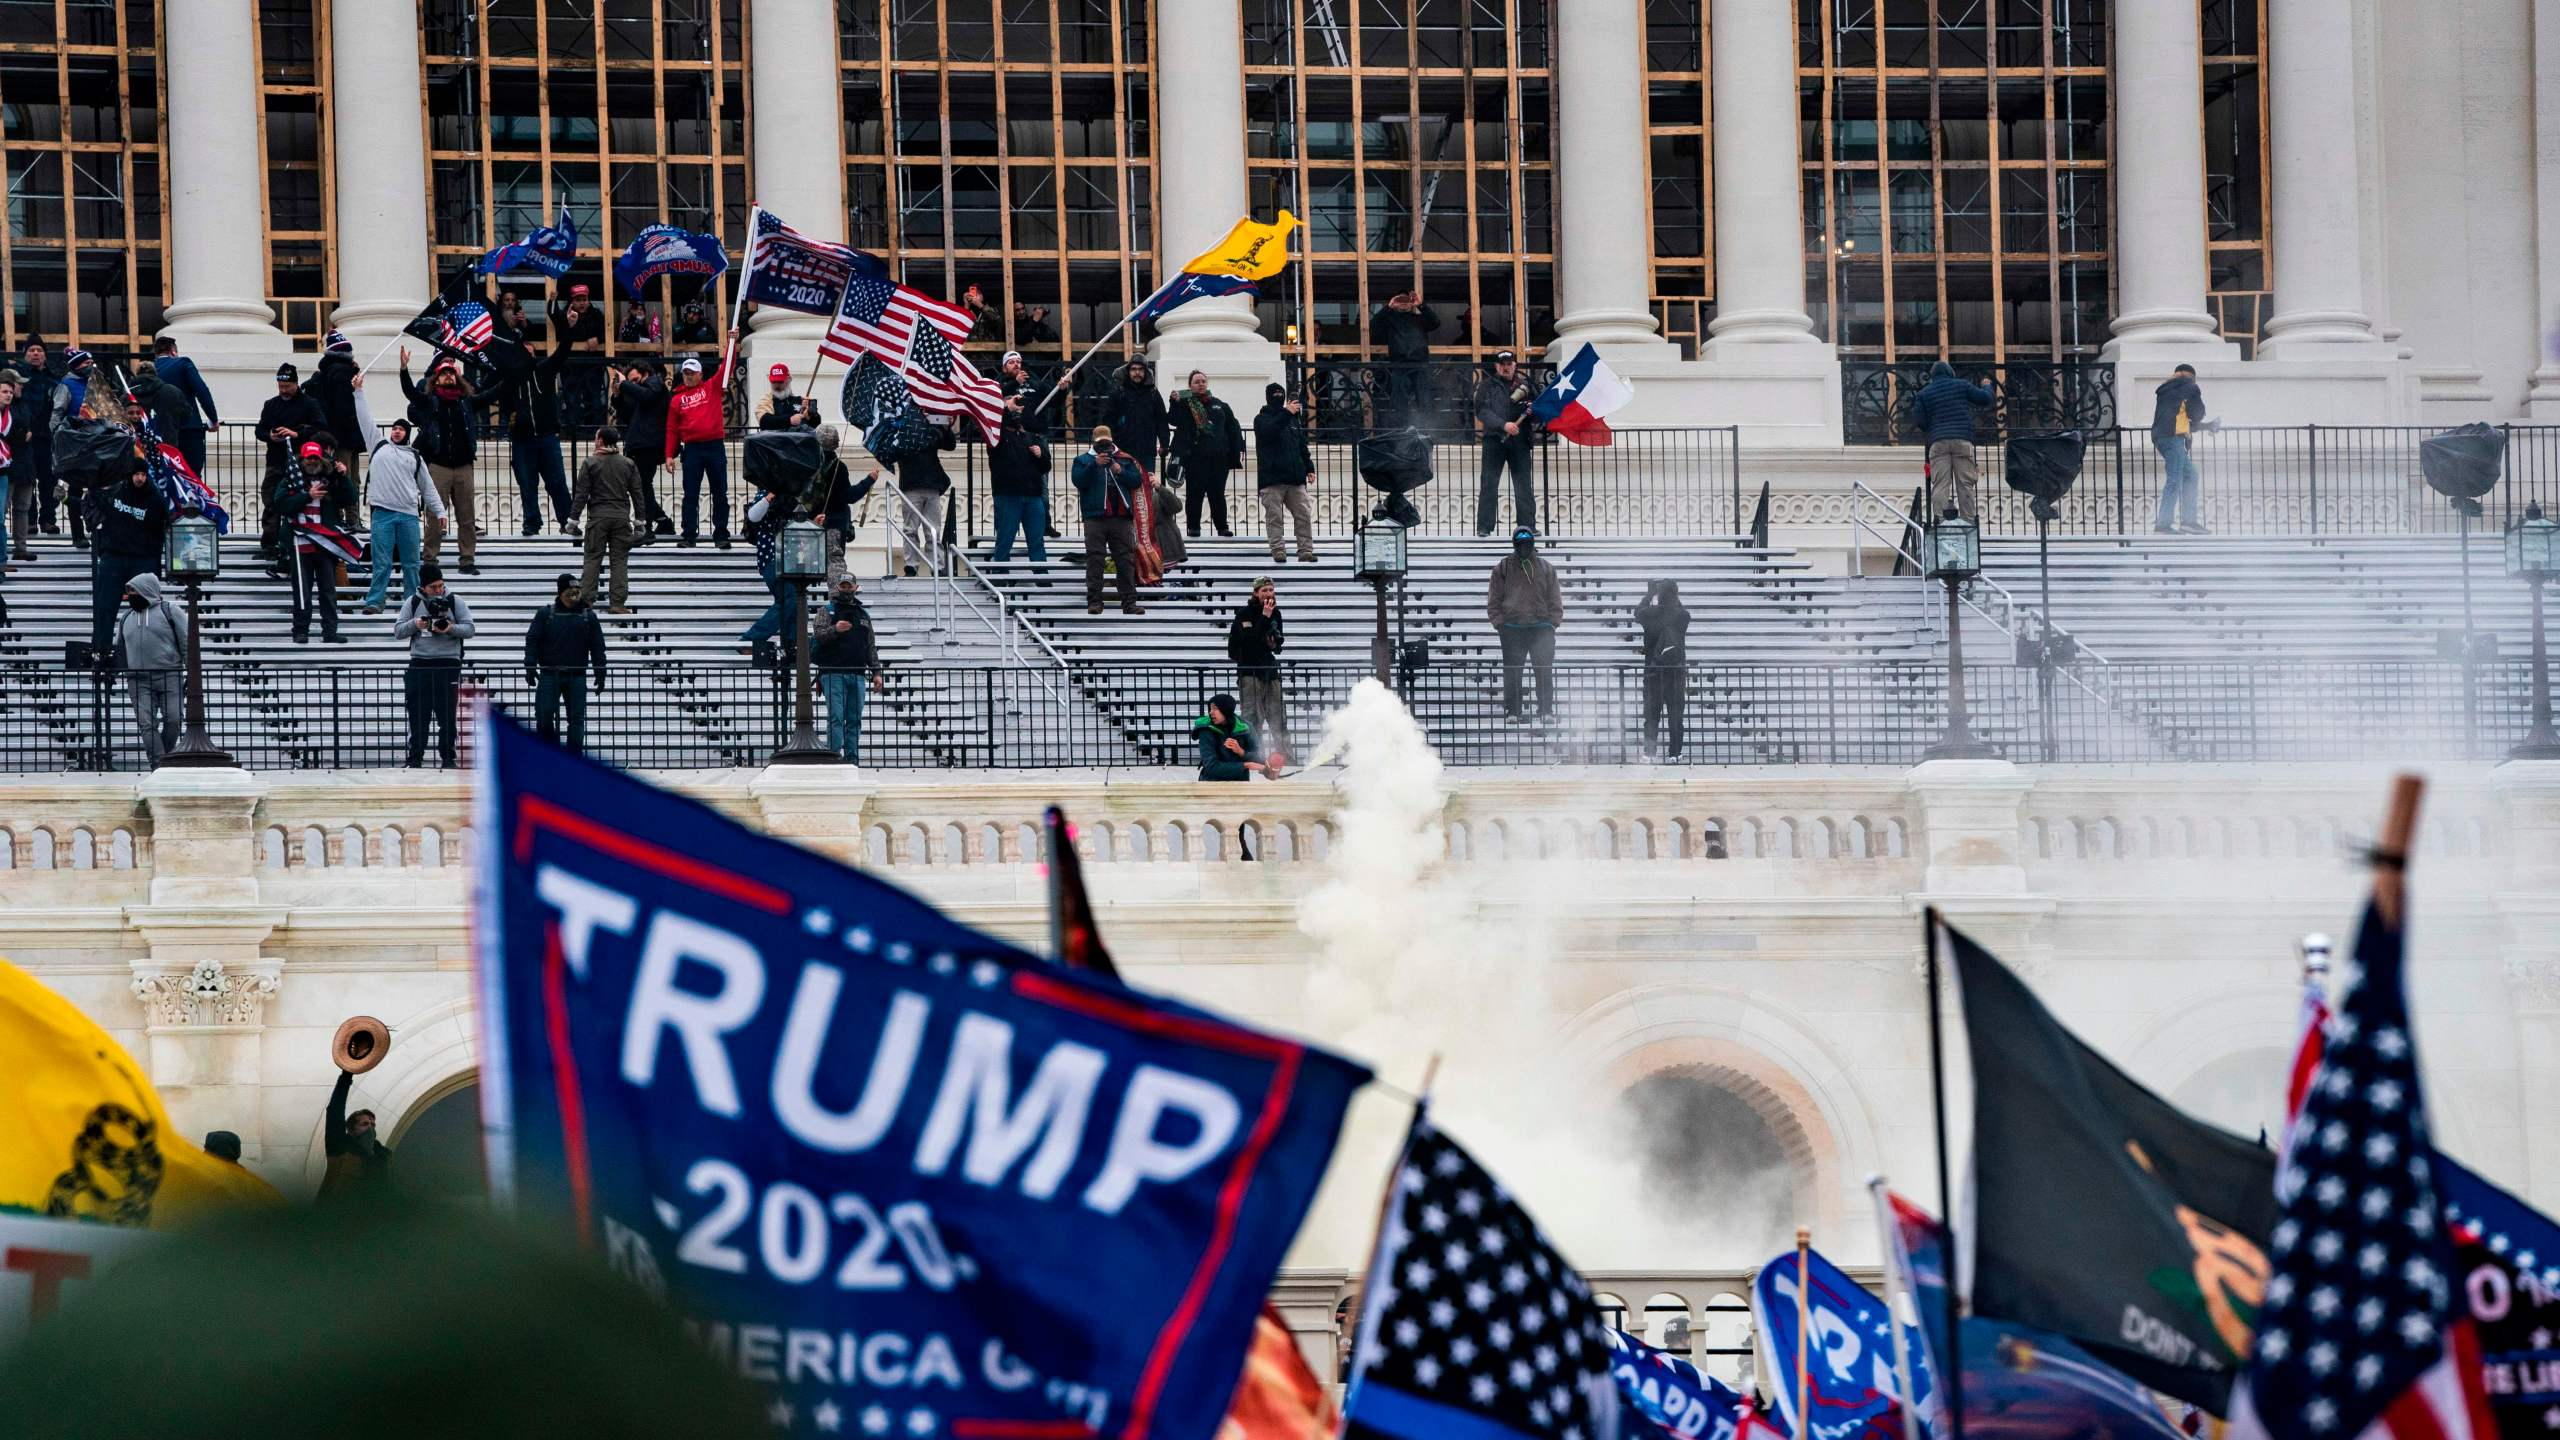 Supporters of US President Donald Trump clash with the US Capitol police during a riot at the US Capitol on January 6, 2021, in Washington, DC. (Alex Edelman/AFP via Getty Images)